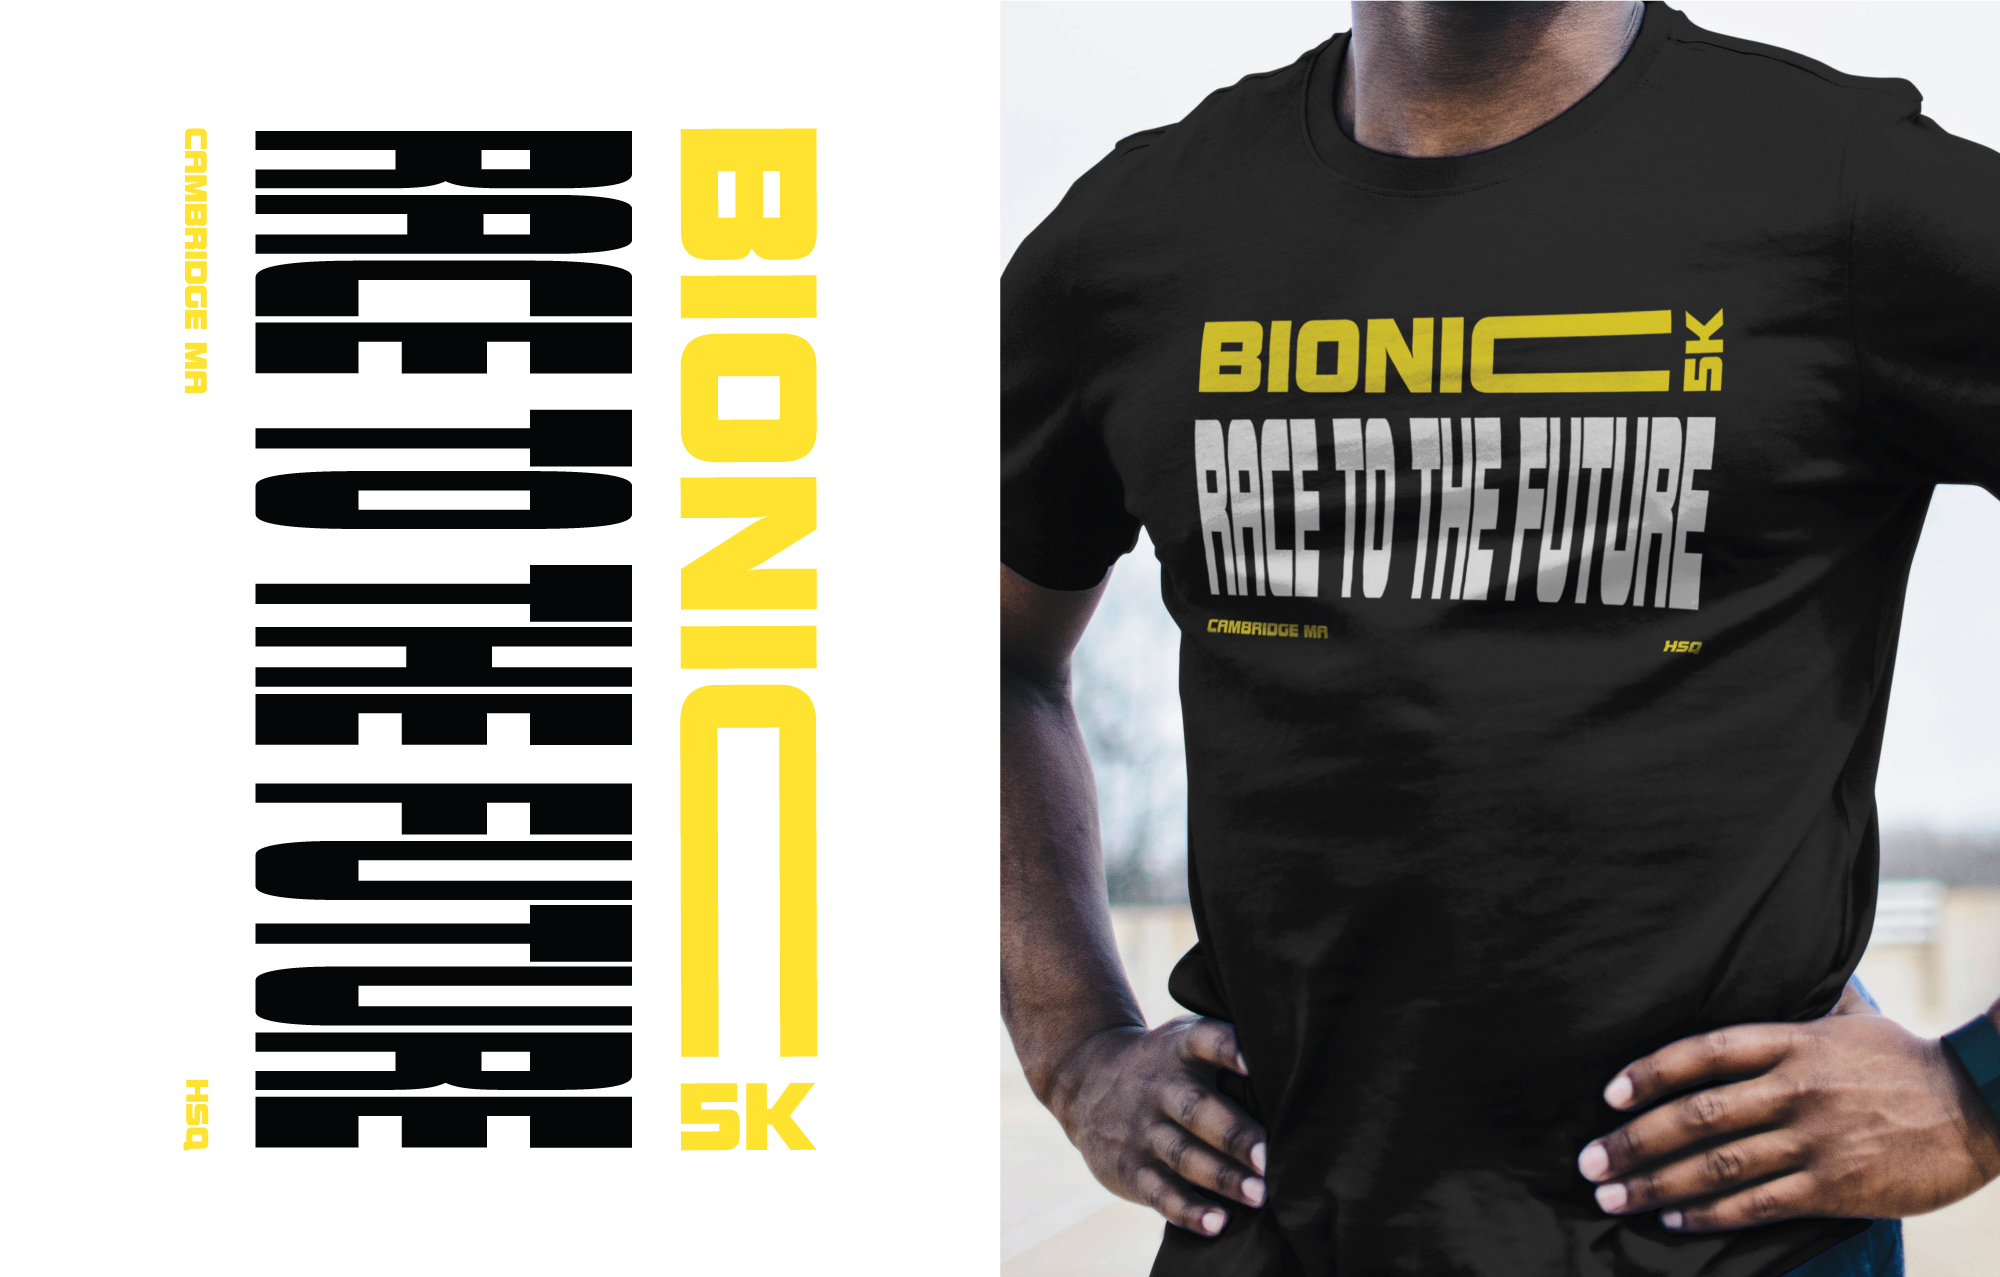 Advancing new prosthetic technologies in sport performance through Bionic5k event series